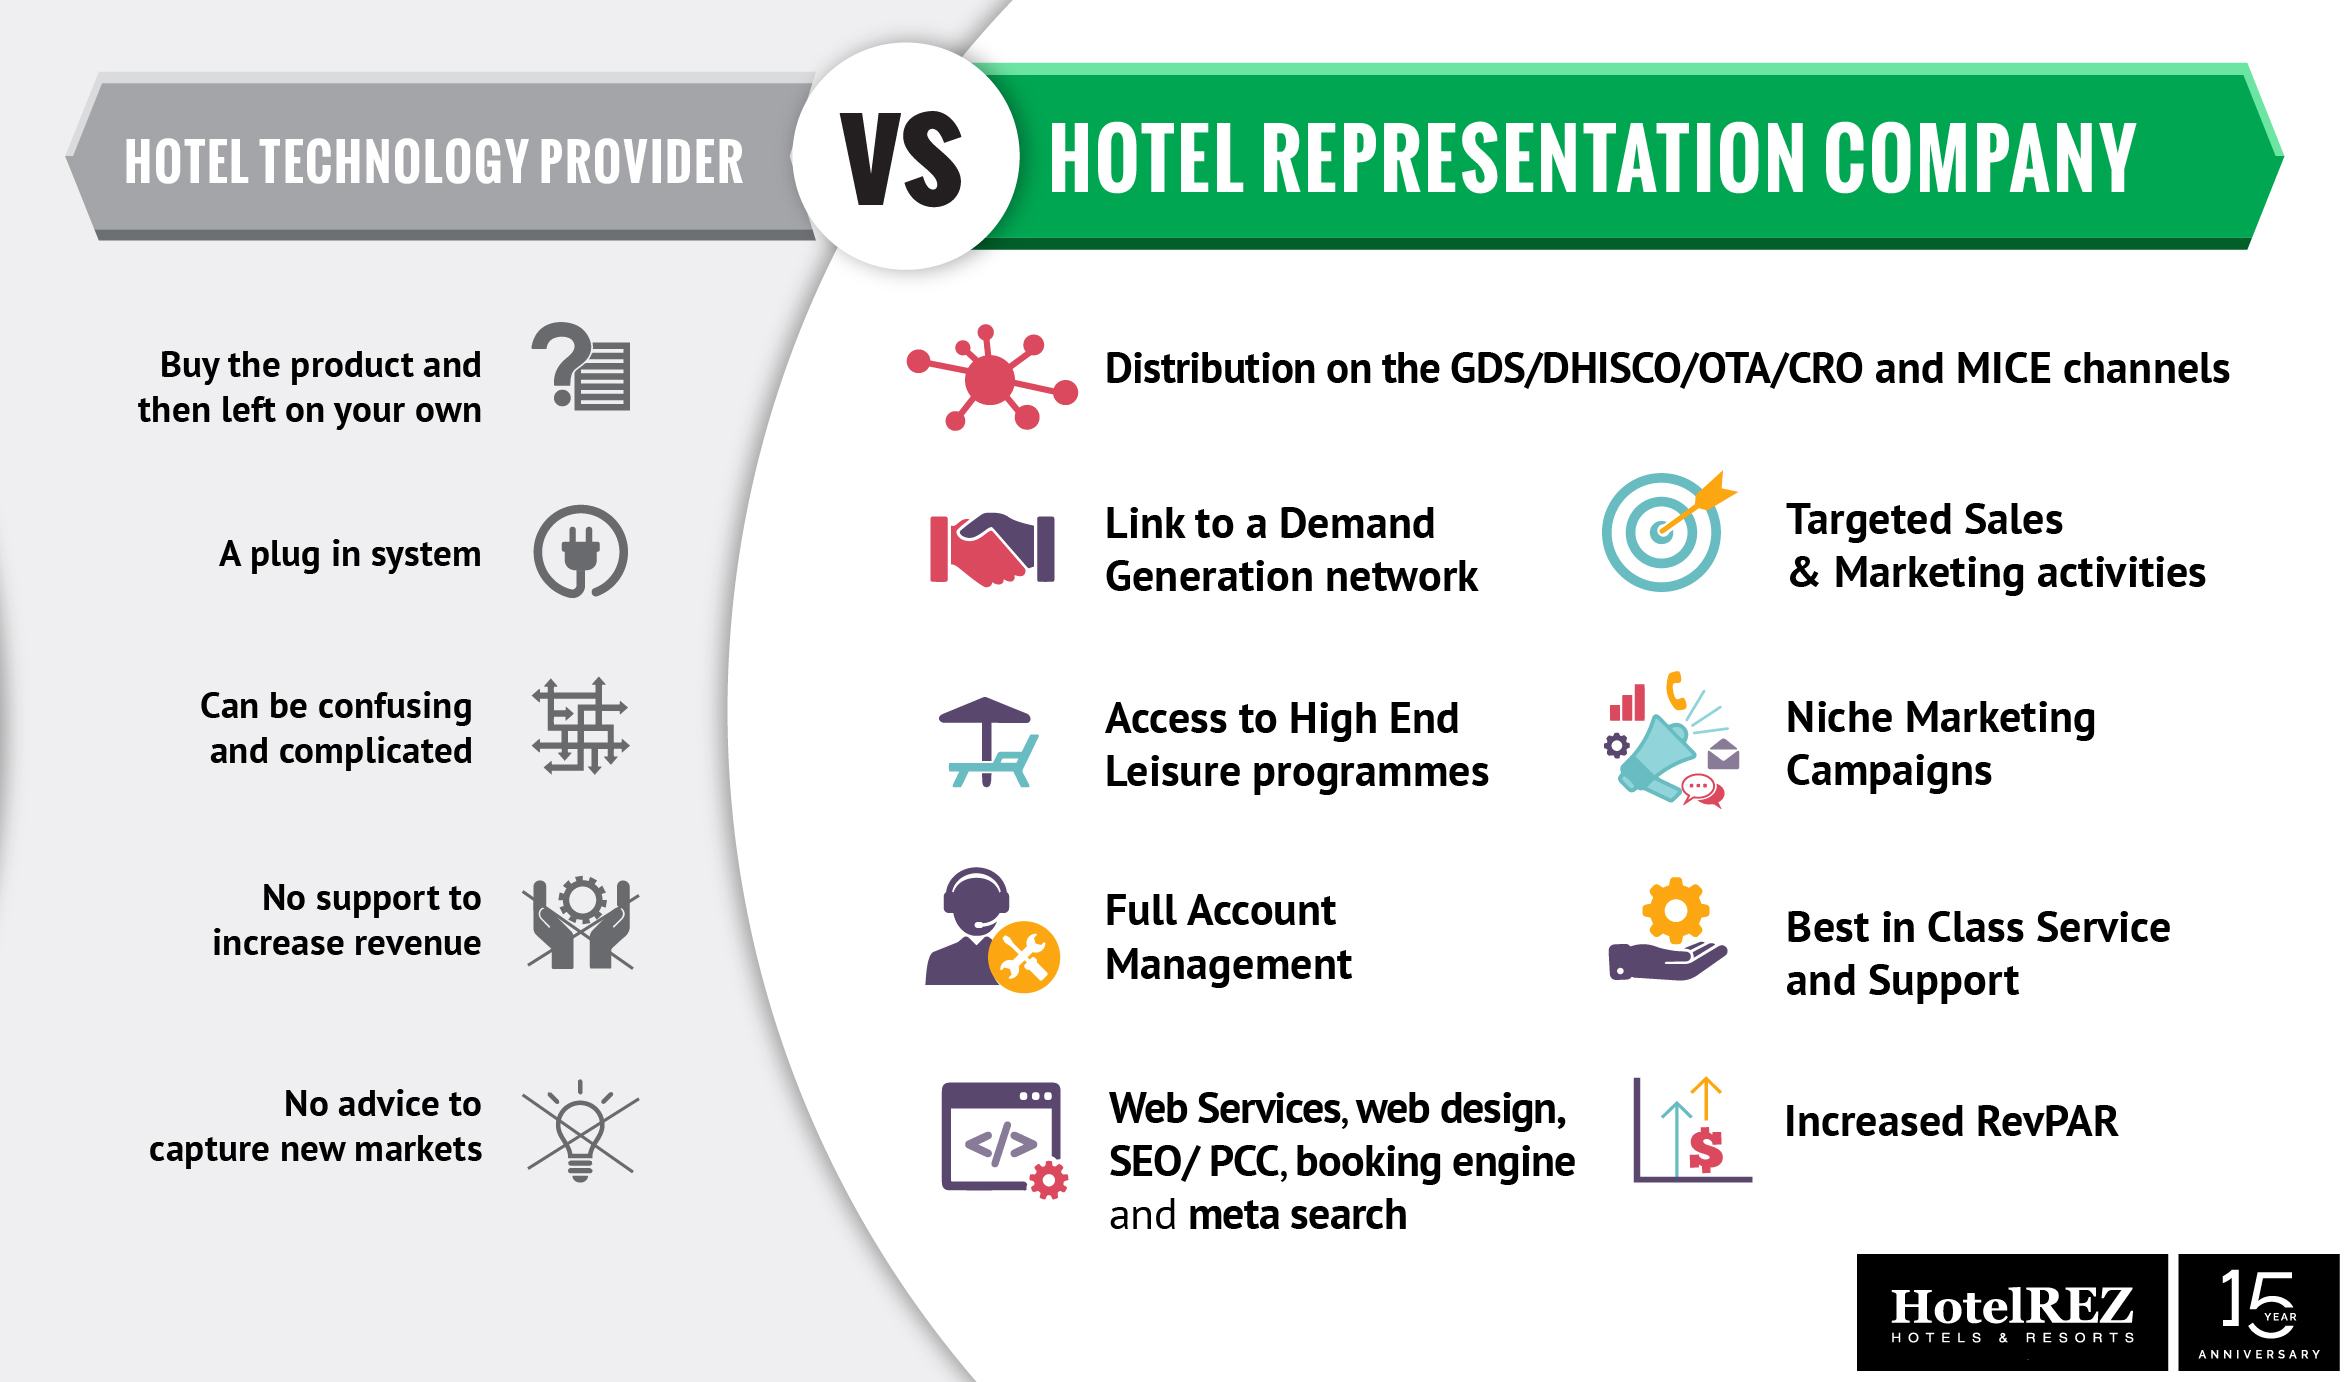 Hotel technology provider vs hotel representation company infographic